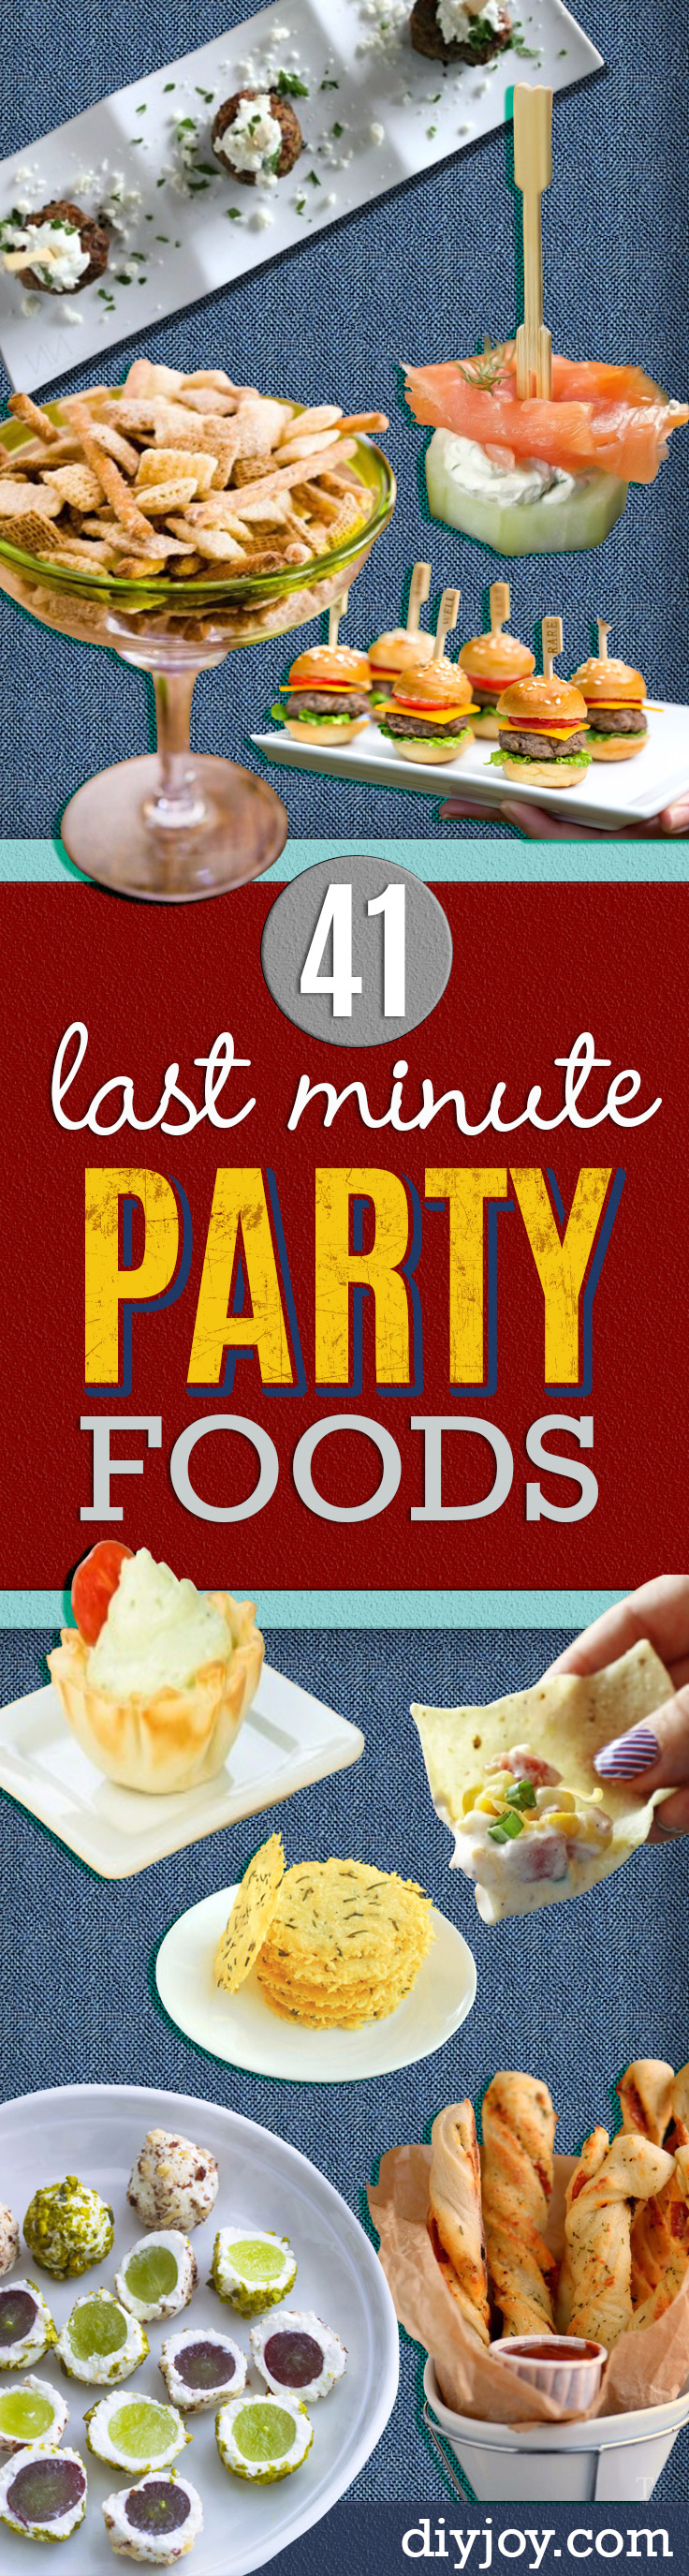 Last Minute Party Foods and Quick Party Recipes - Easy Appetizers, Simple Snacks, Ideas for 4th of July Parties, Cookouts and BBQ With Friends. Quick and Cheap Food Ideas for a Crowd #appetizers #recipes #partyfood